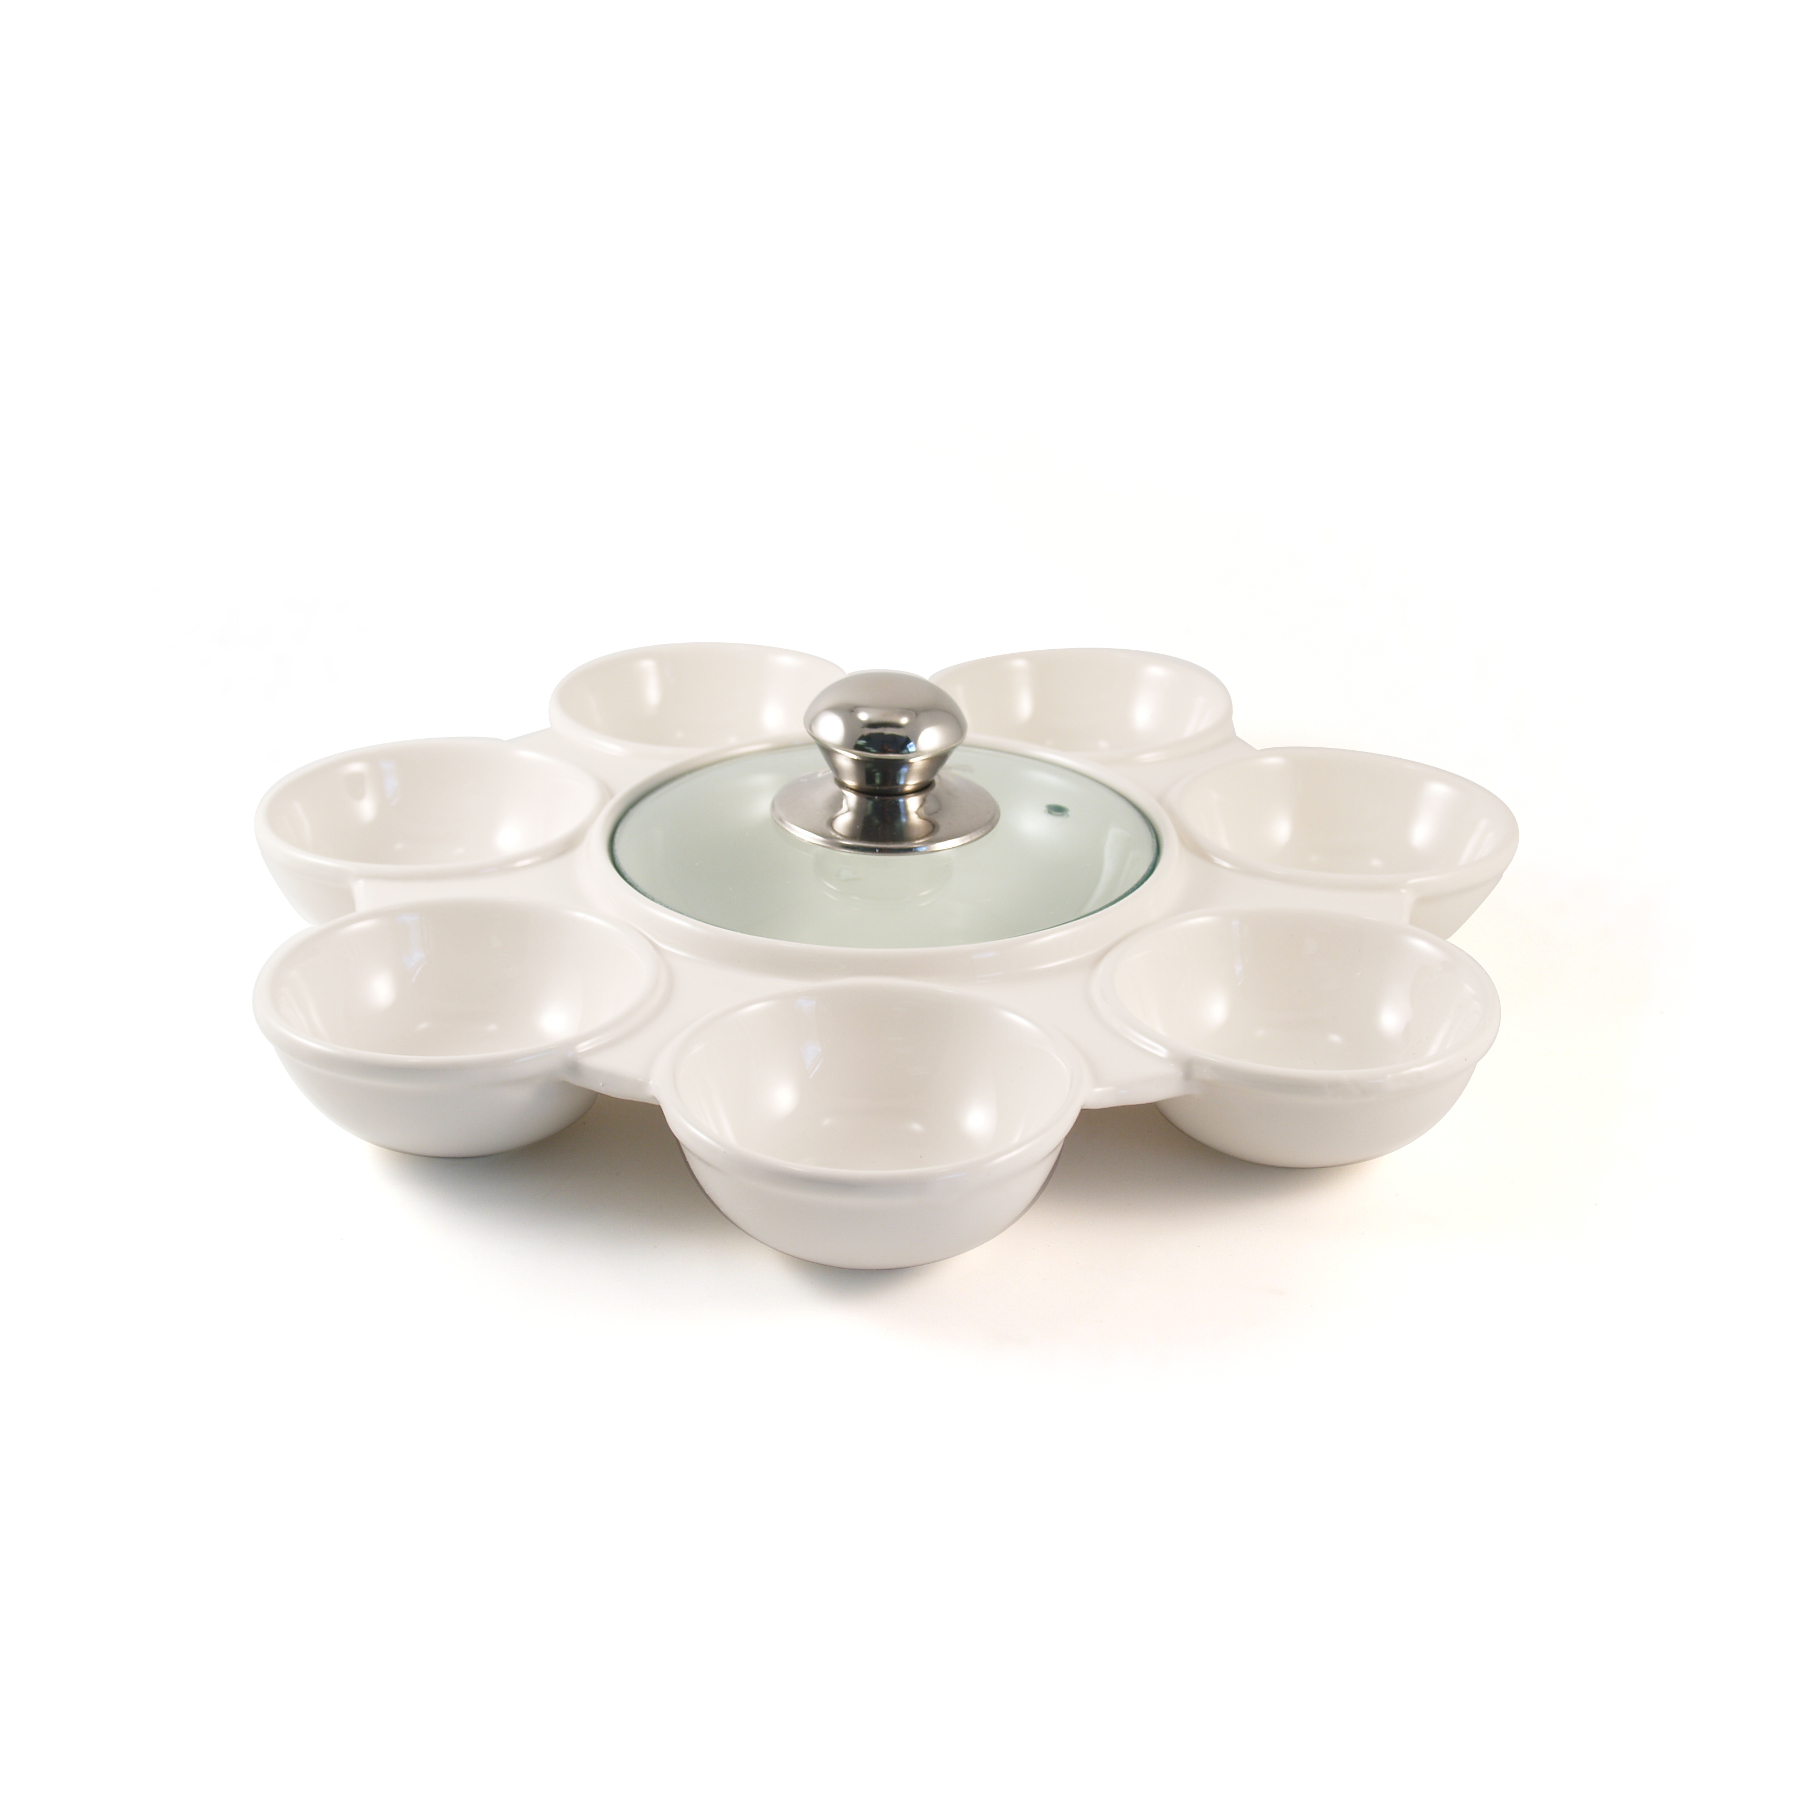 Dip-able 8 Section Ceramic Snack Serving Tray with Glass Lid